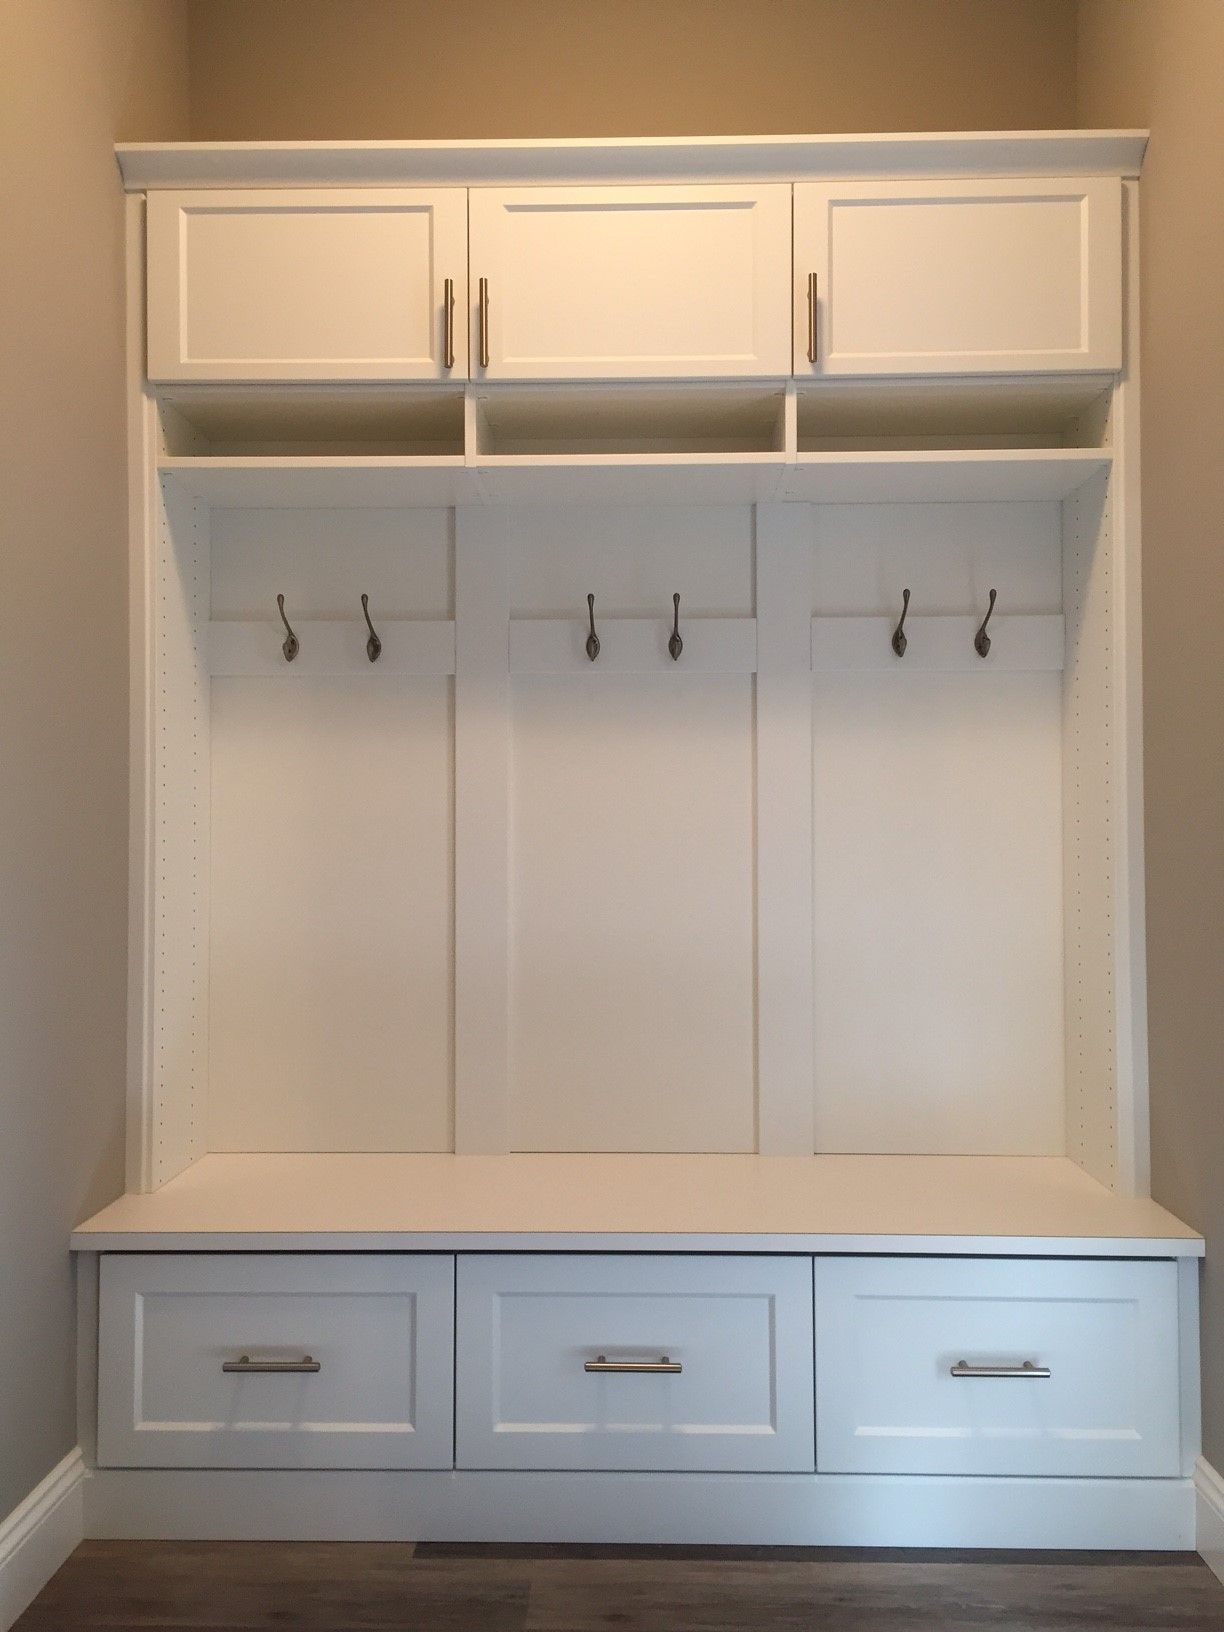 Here Are Some Mudroom Lockers With Coat Hooks And Drawers